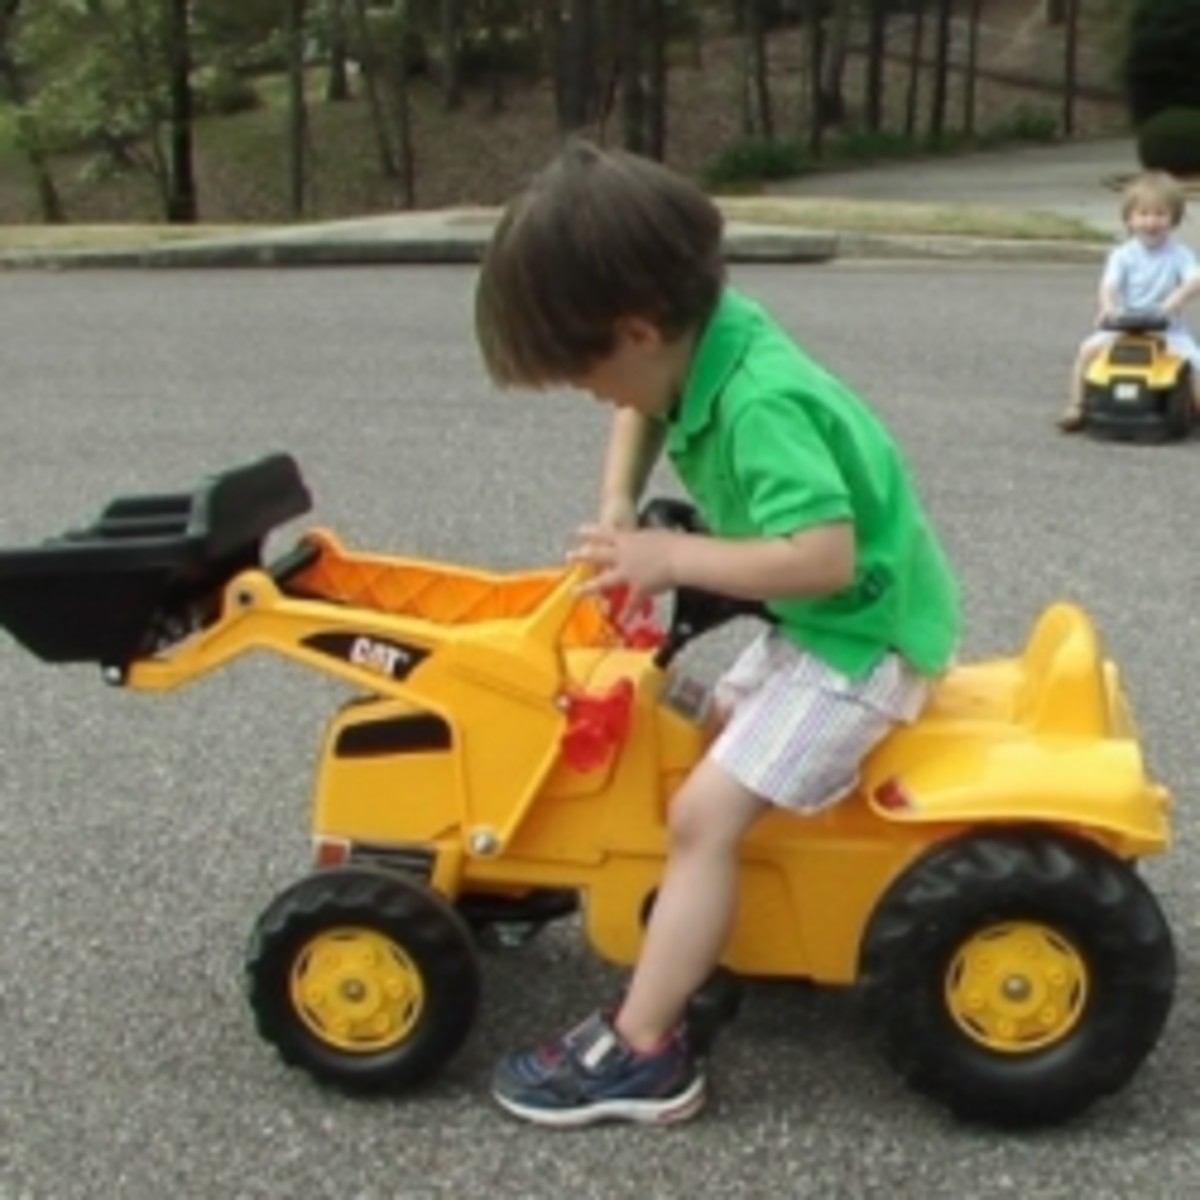 Building Toys For Little Boys : Best ride on toys for year old boys hubpages